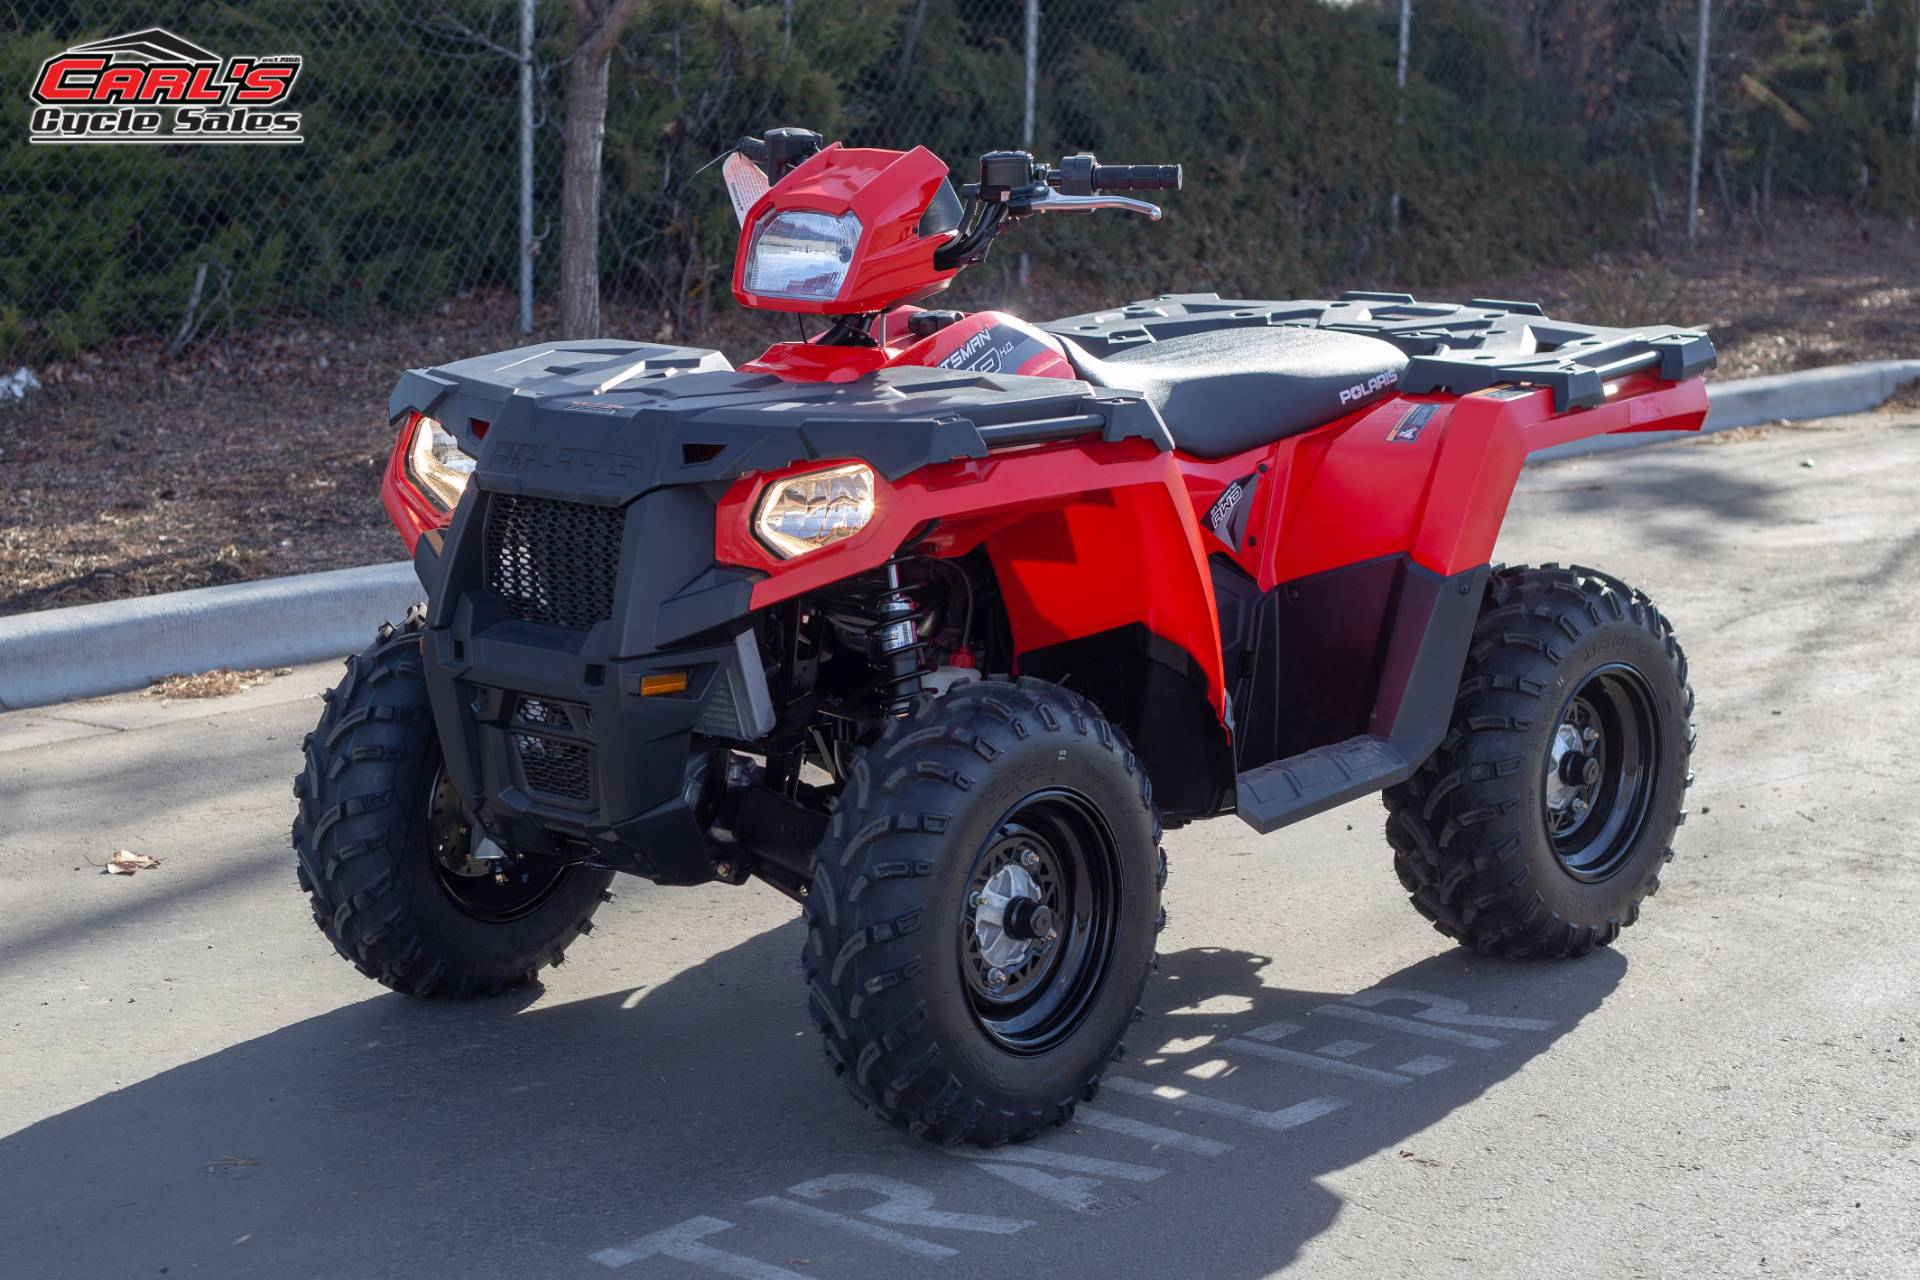 2019 Polaris Sportsman 450 H.O. in Boise, Idaho